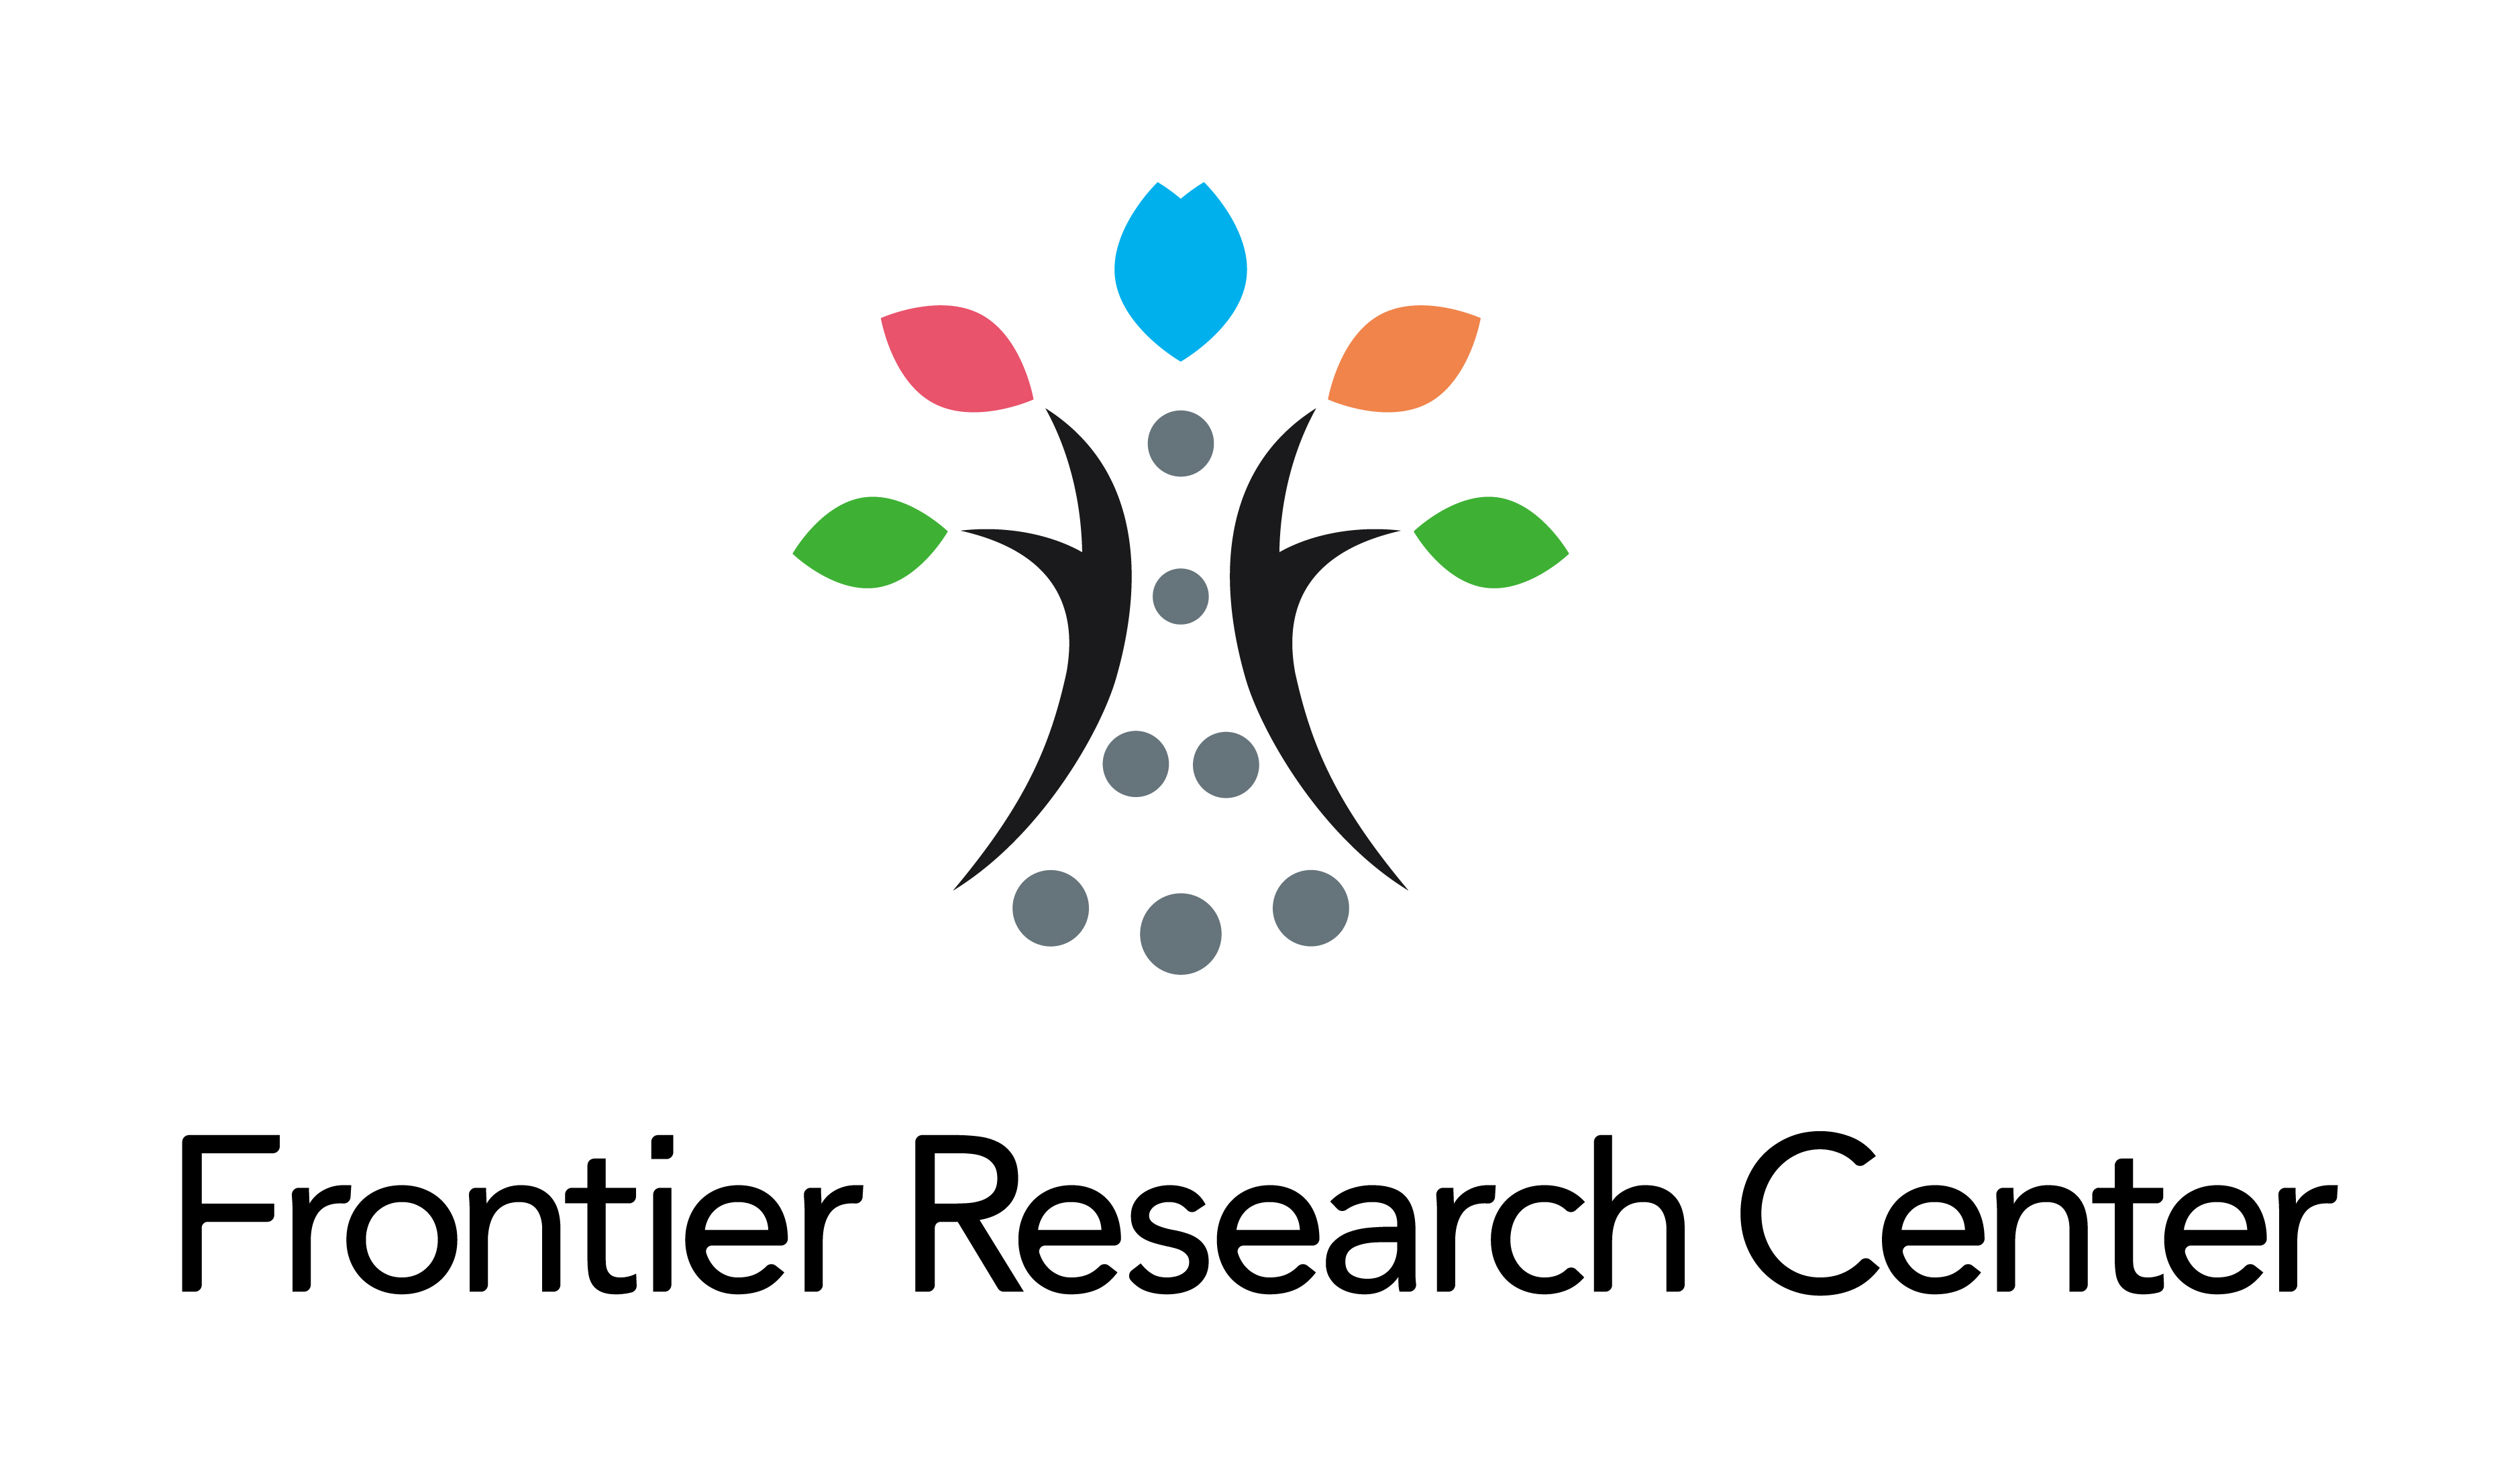 Frontier Research Center